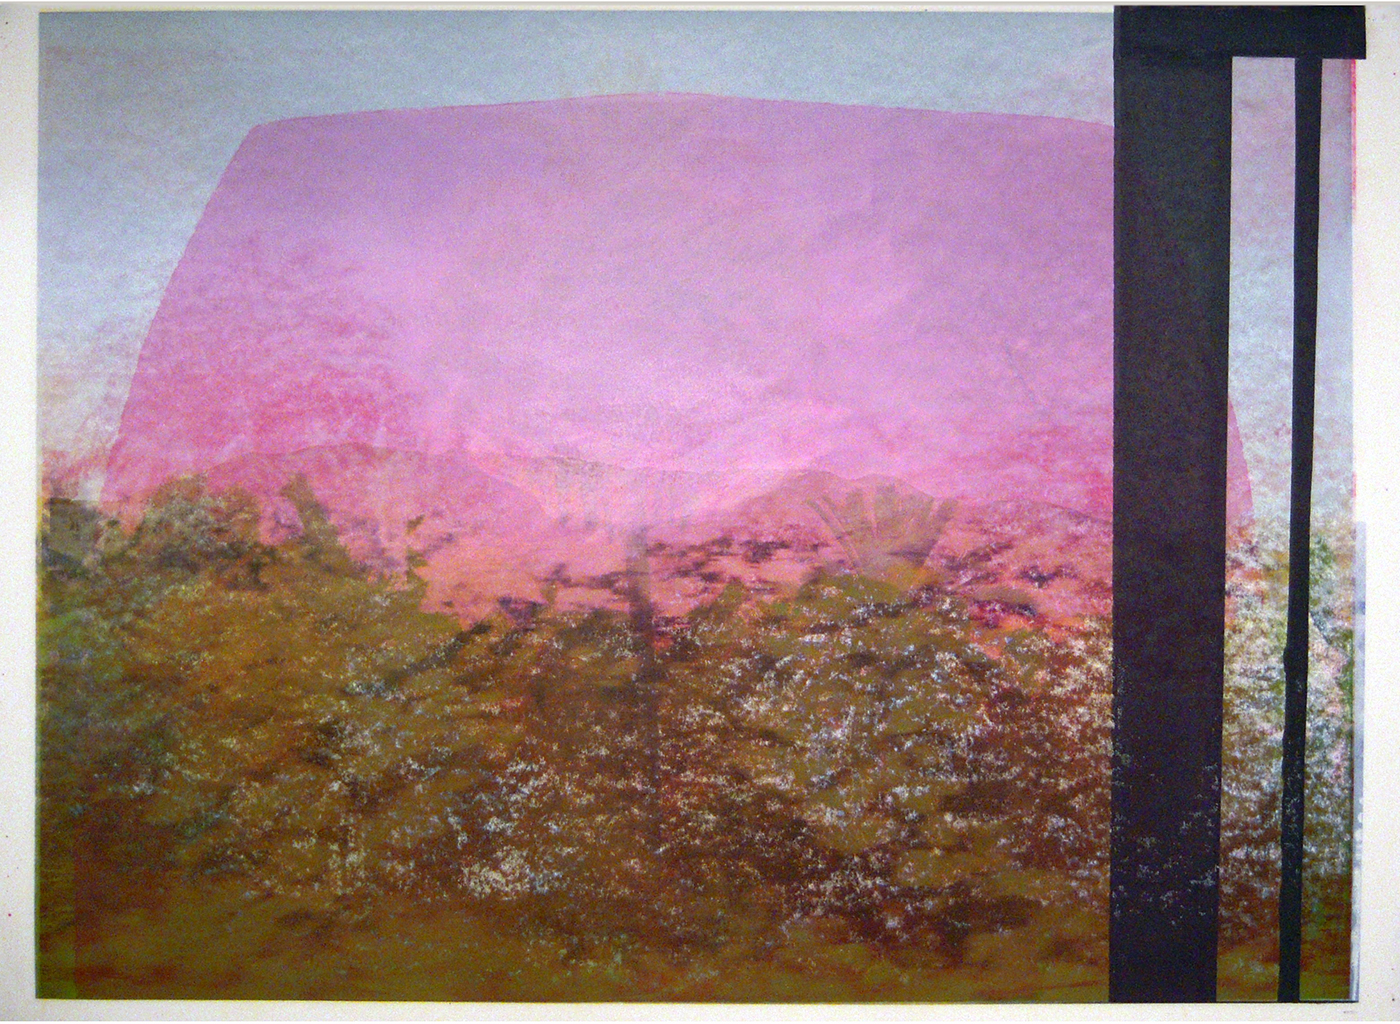 Daniele Genadry - Between Saida and Sur (Pink), 2009